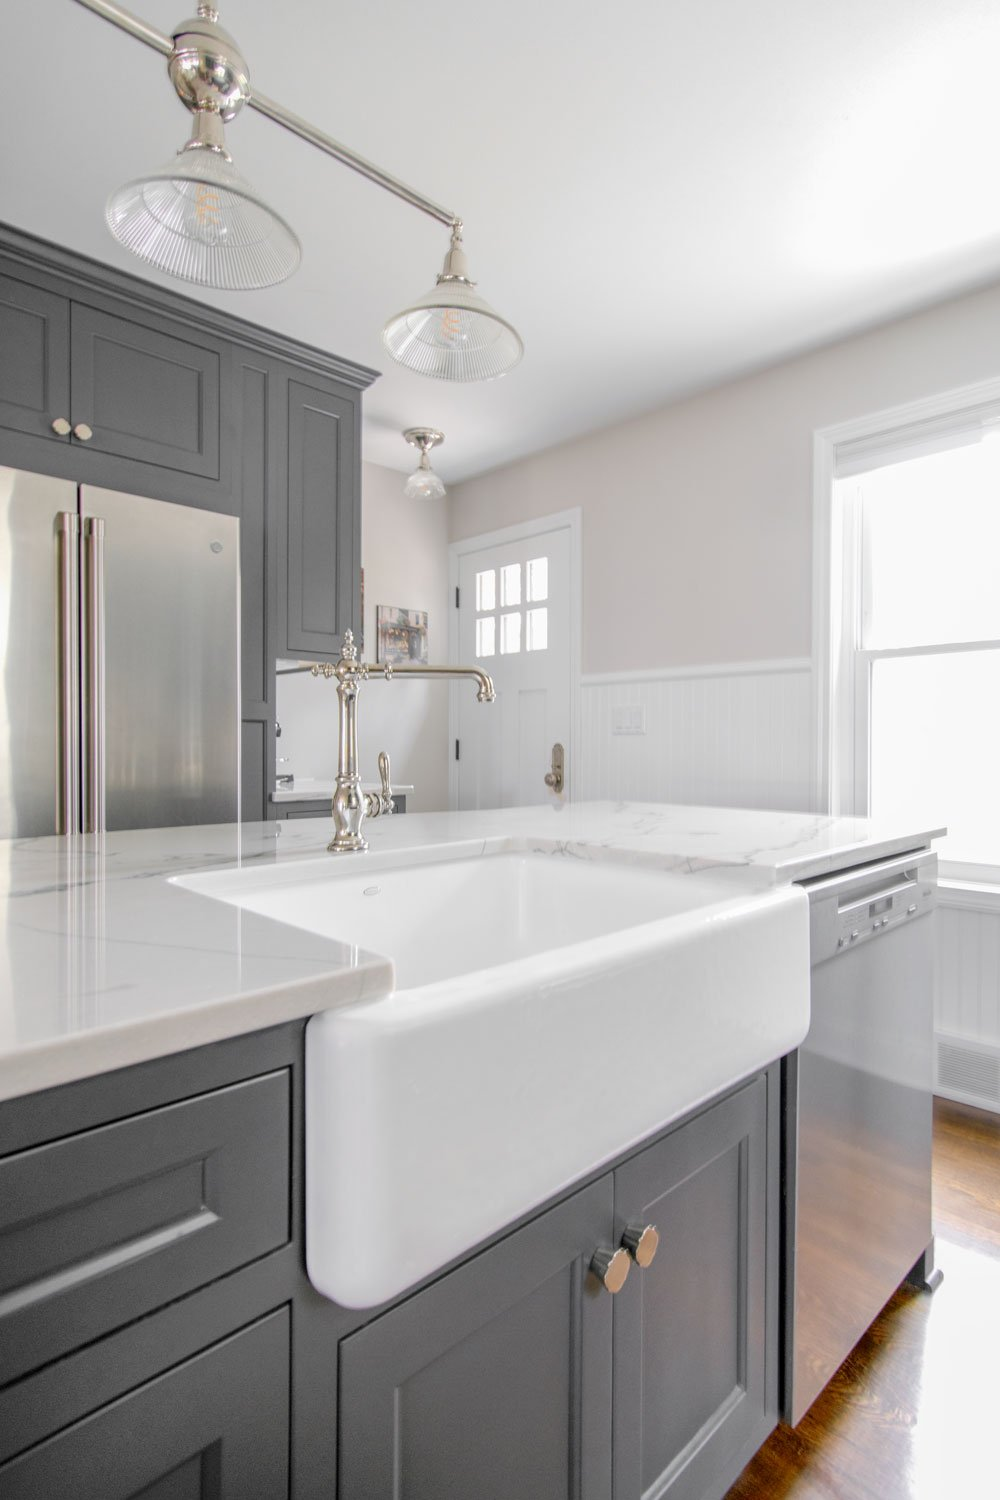 Delafield kitchen remodel Kohler farmhouse sink